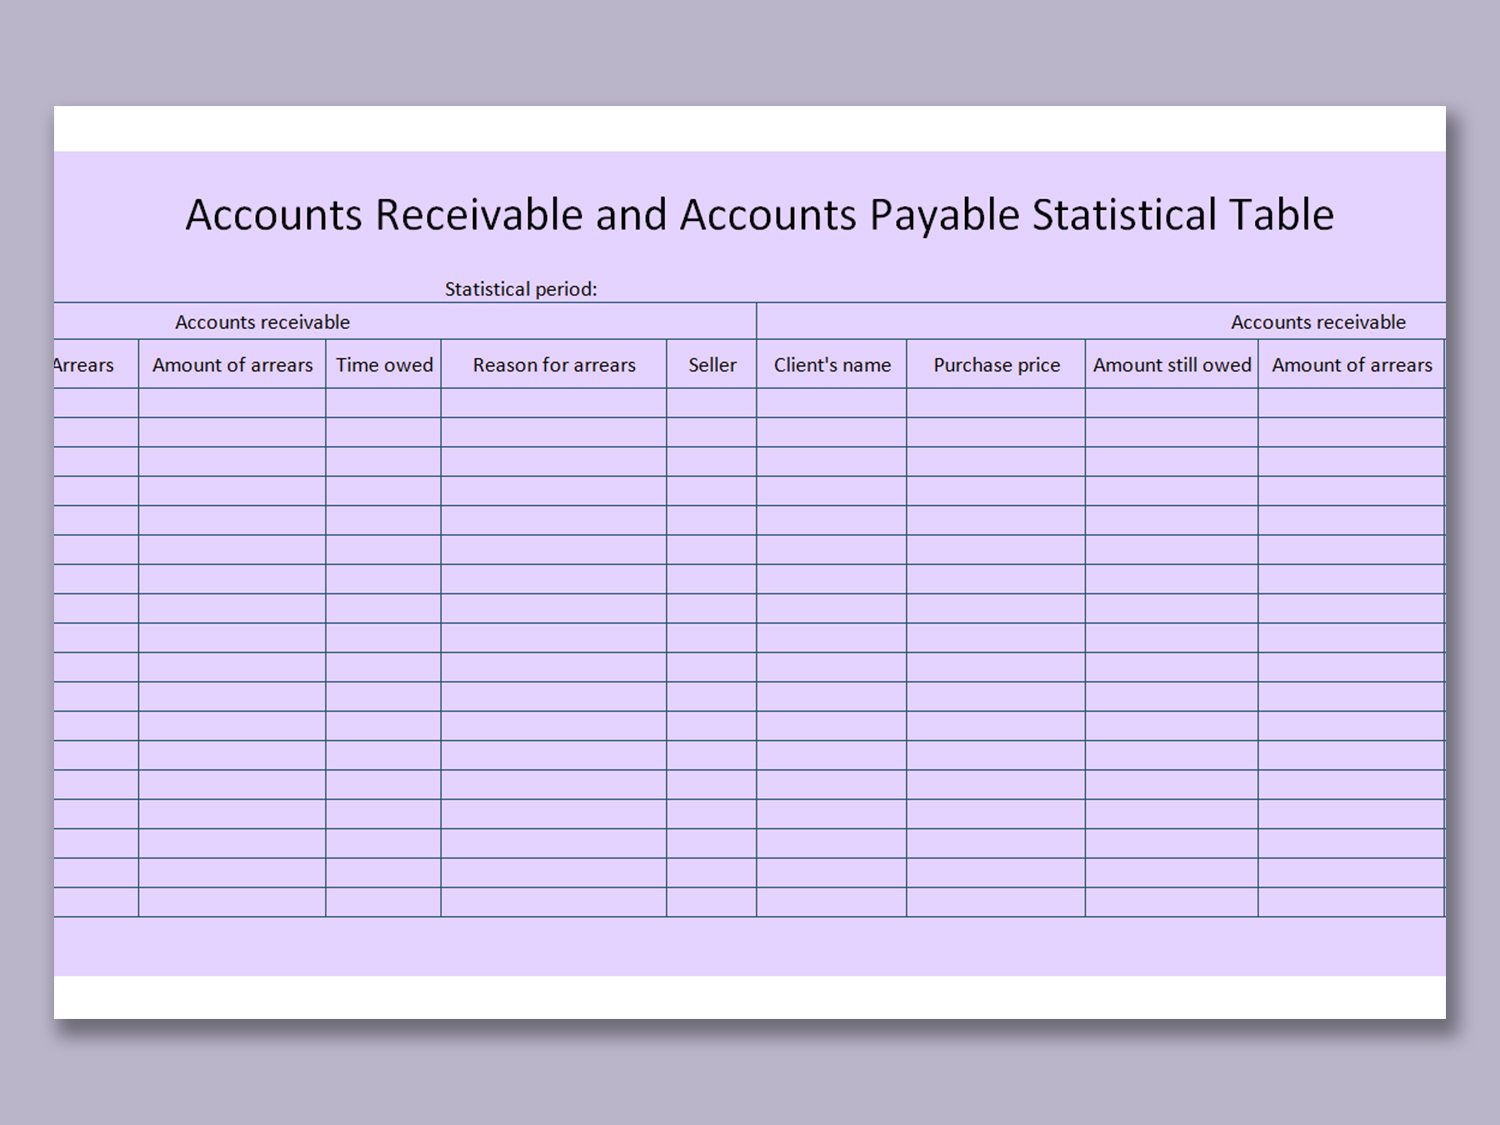 Account Payable Spreadsheet Template from d4z1onkegyrs5.cloudfront.net